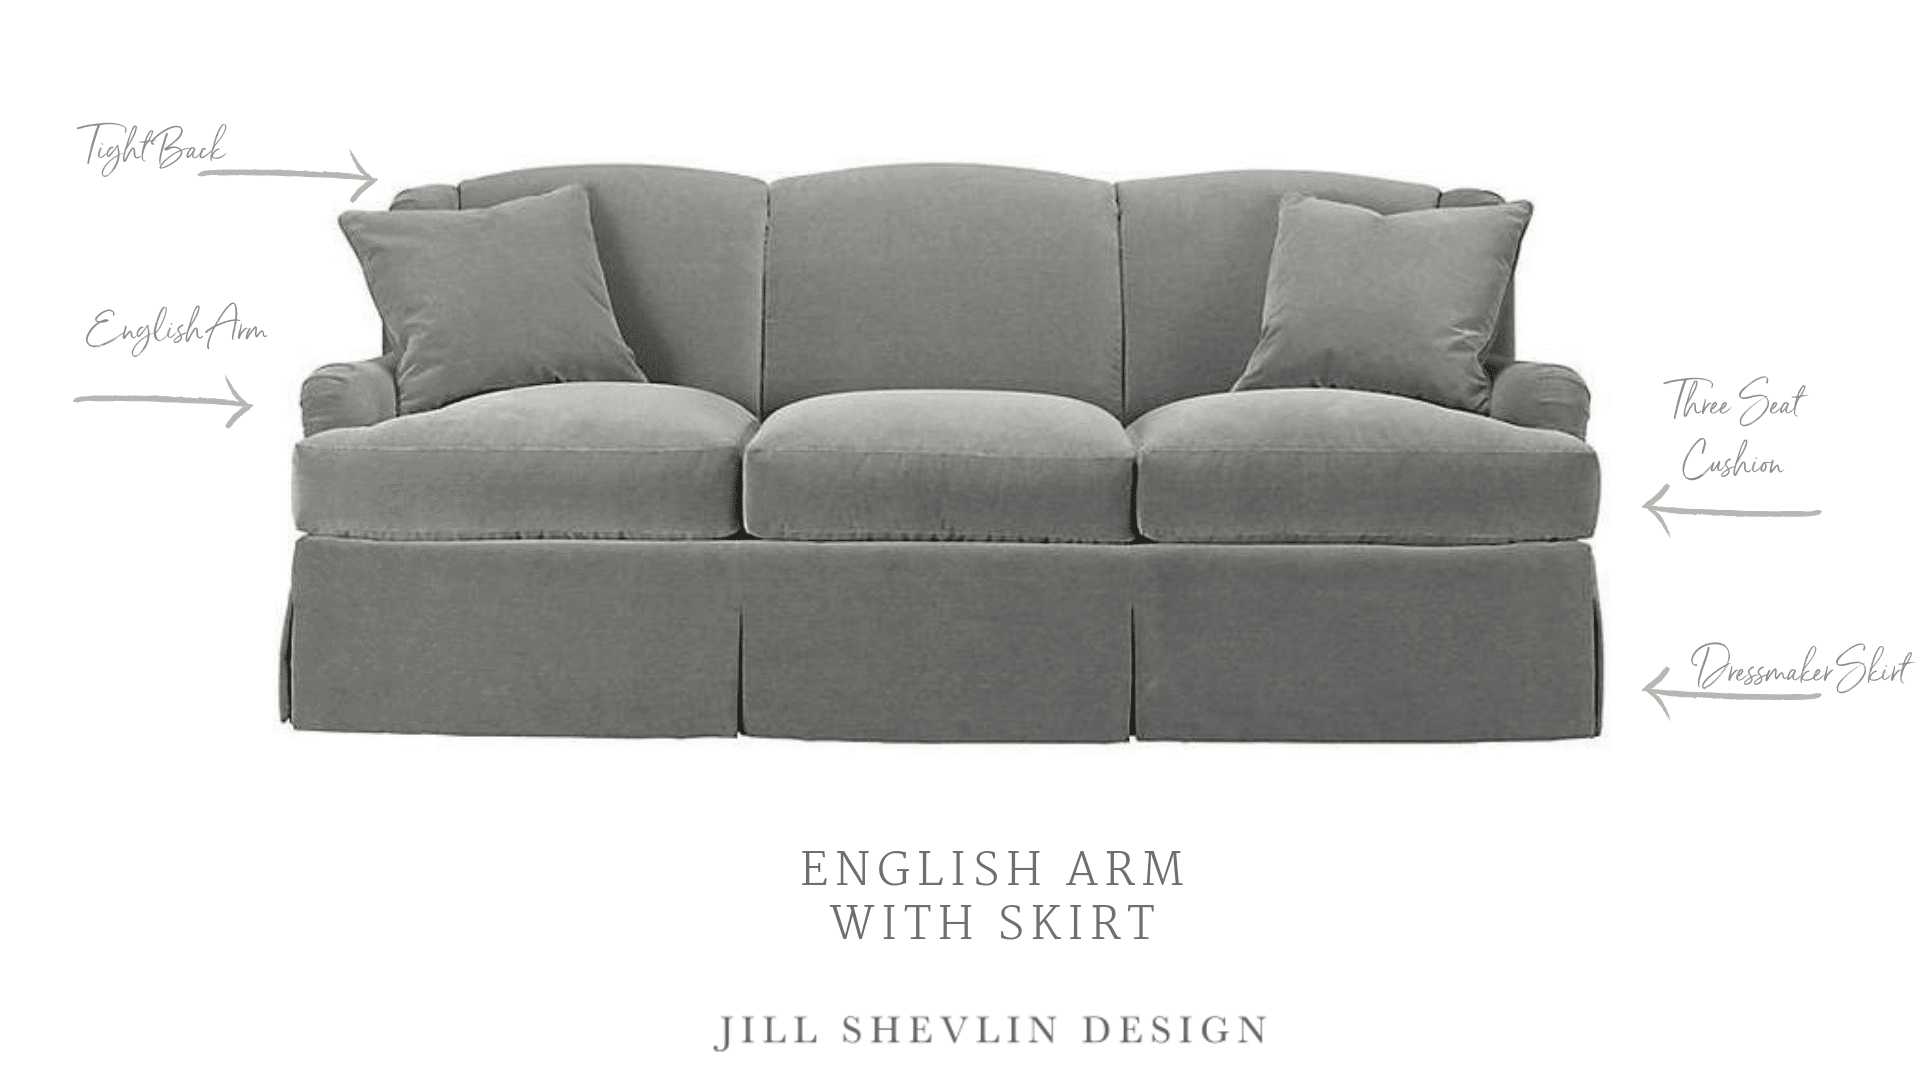 English Arm Sofa Tight Back Cushion Dressmaker Skirt Jill Shevlin